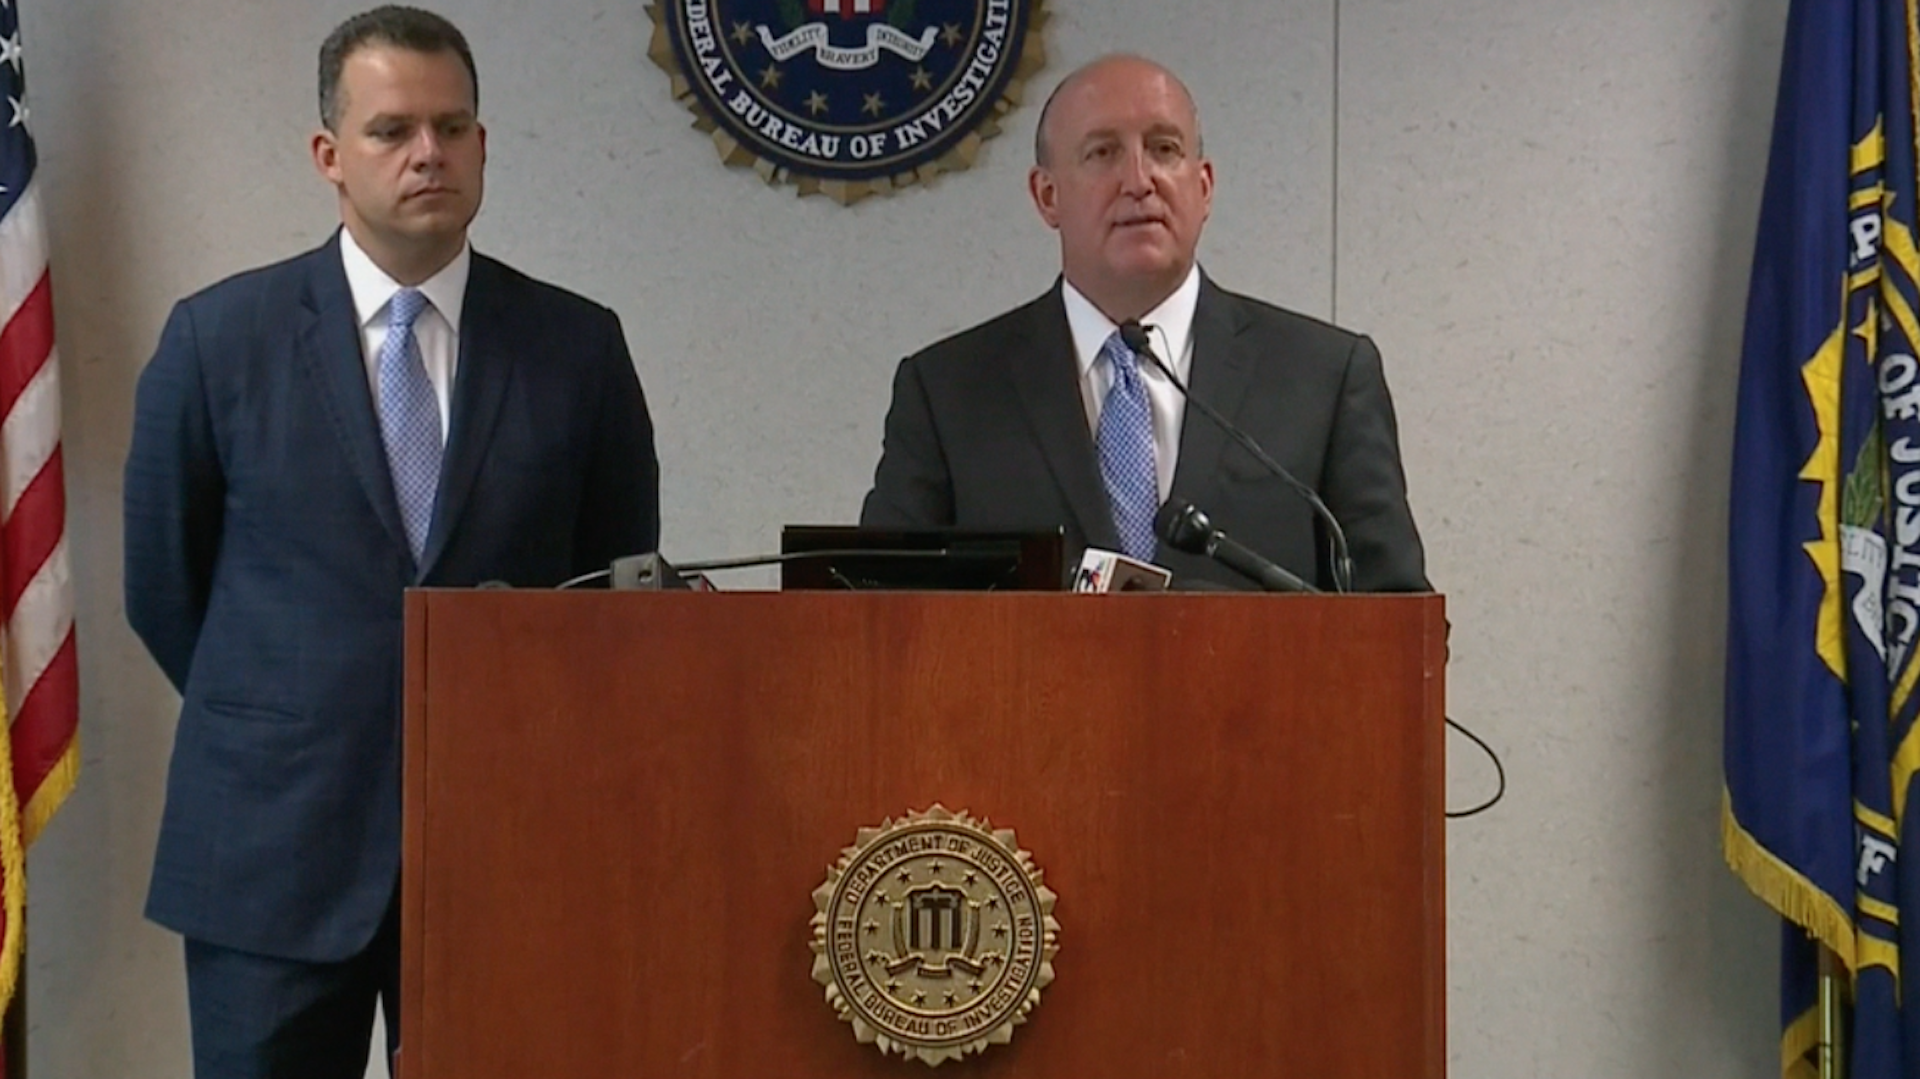 FBI arrests man it says was plotting July 4 attack in downtown Cleveland